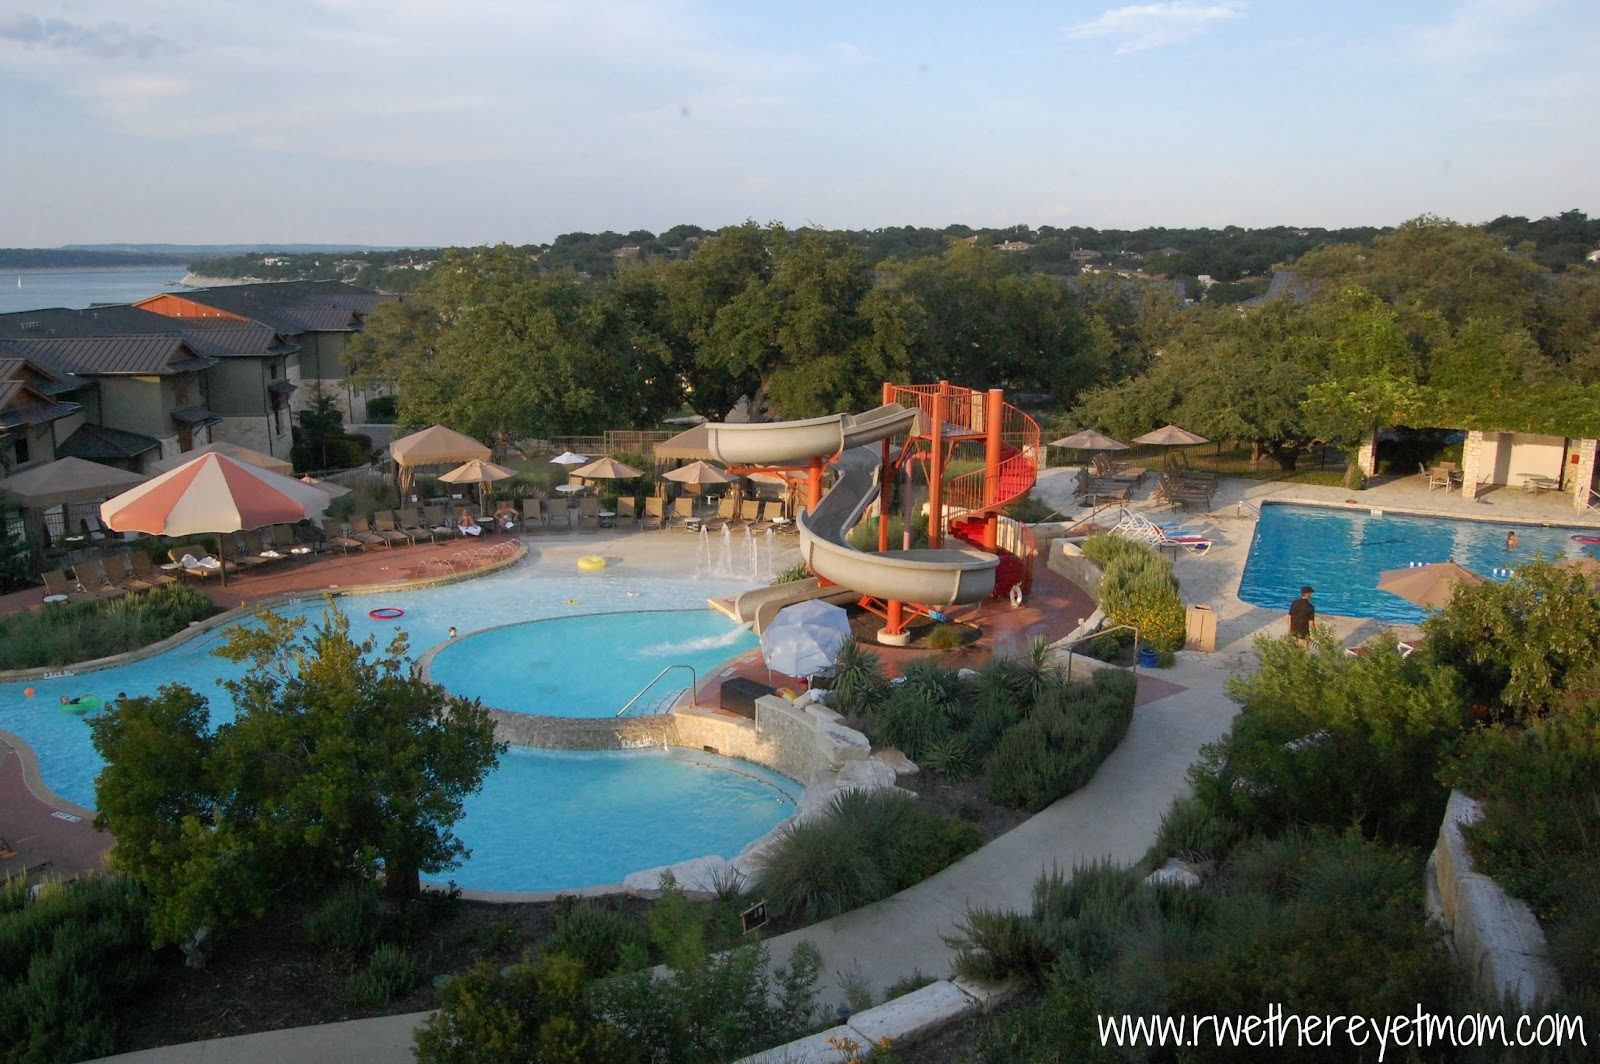 Lakeway resort spa austin texas r we there yet mom for Texas spas and resorts